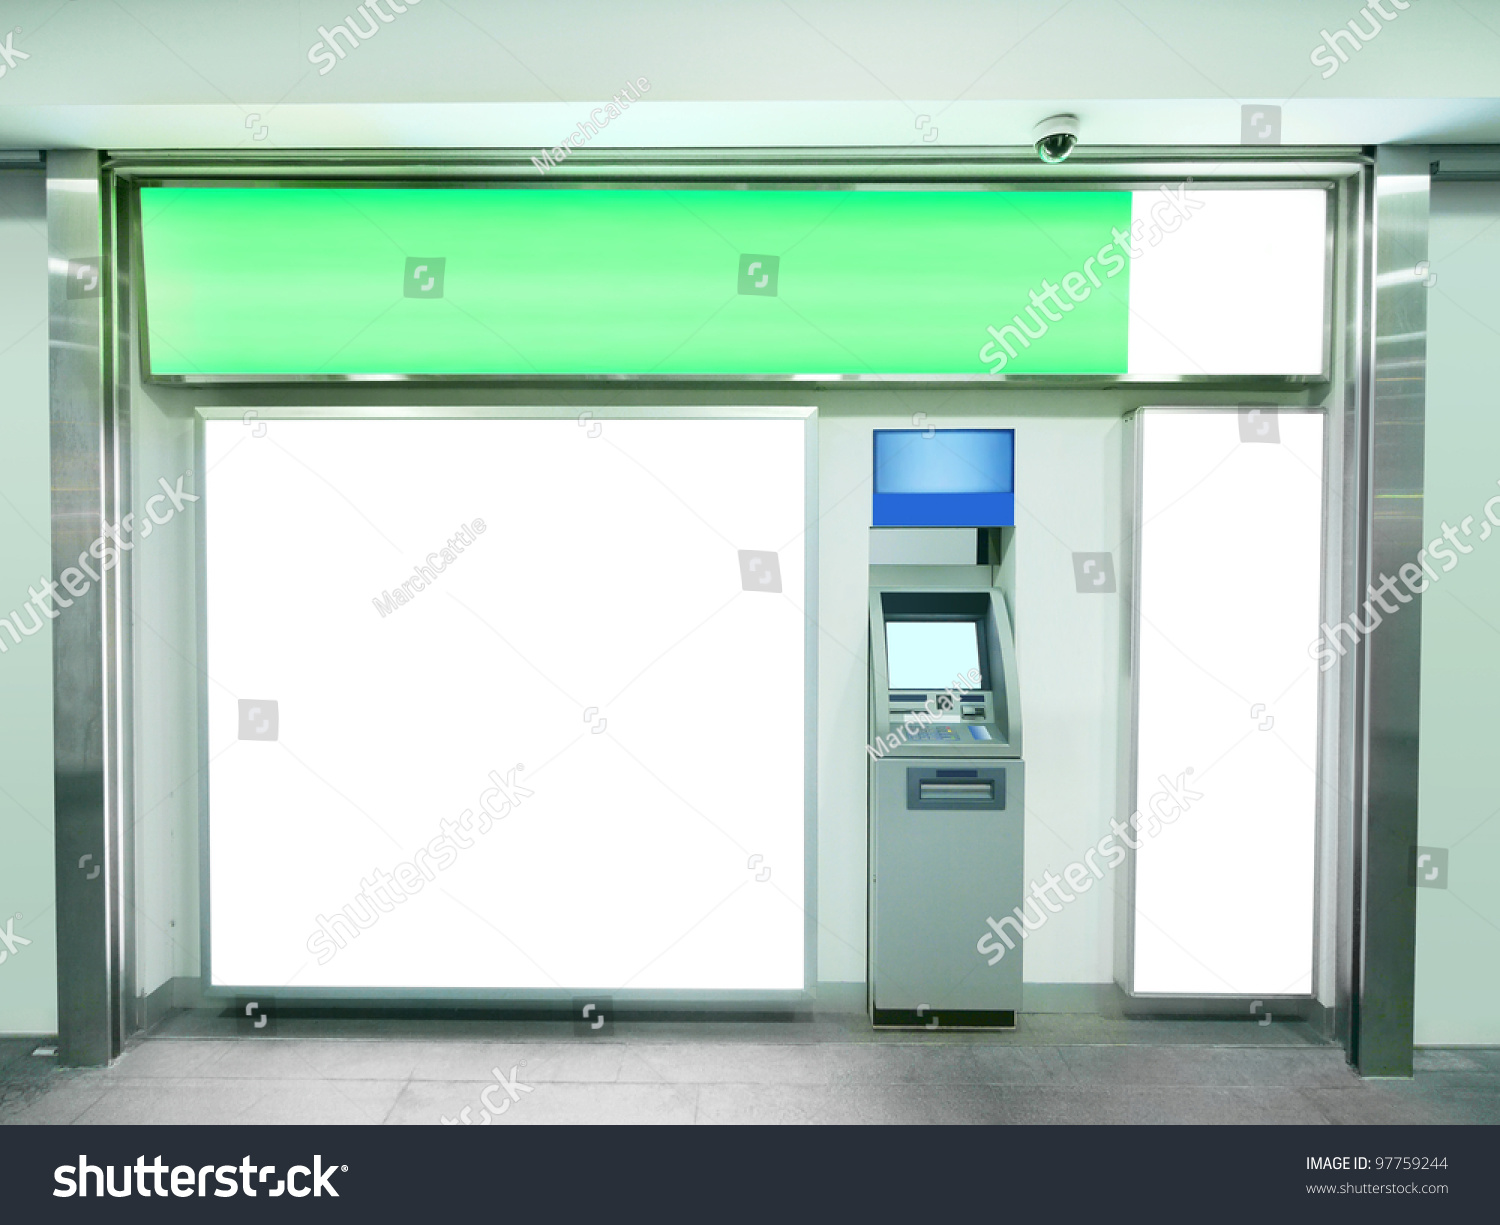 thesis about automated teller machine An automated teller machine (atm) is an electronic telecommunications device that enables customers of financial institutions to perform financial transactions, such.